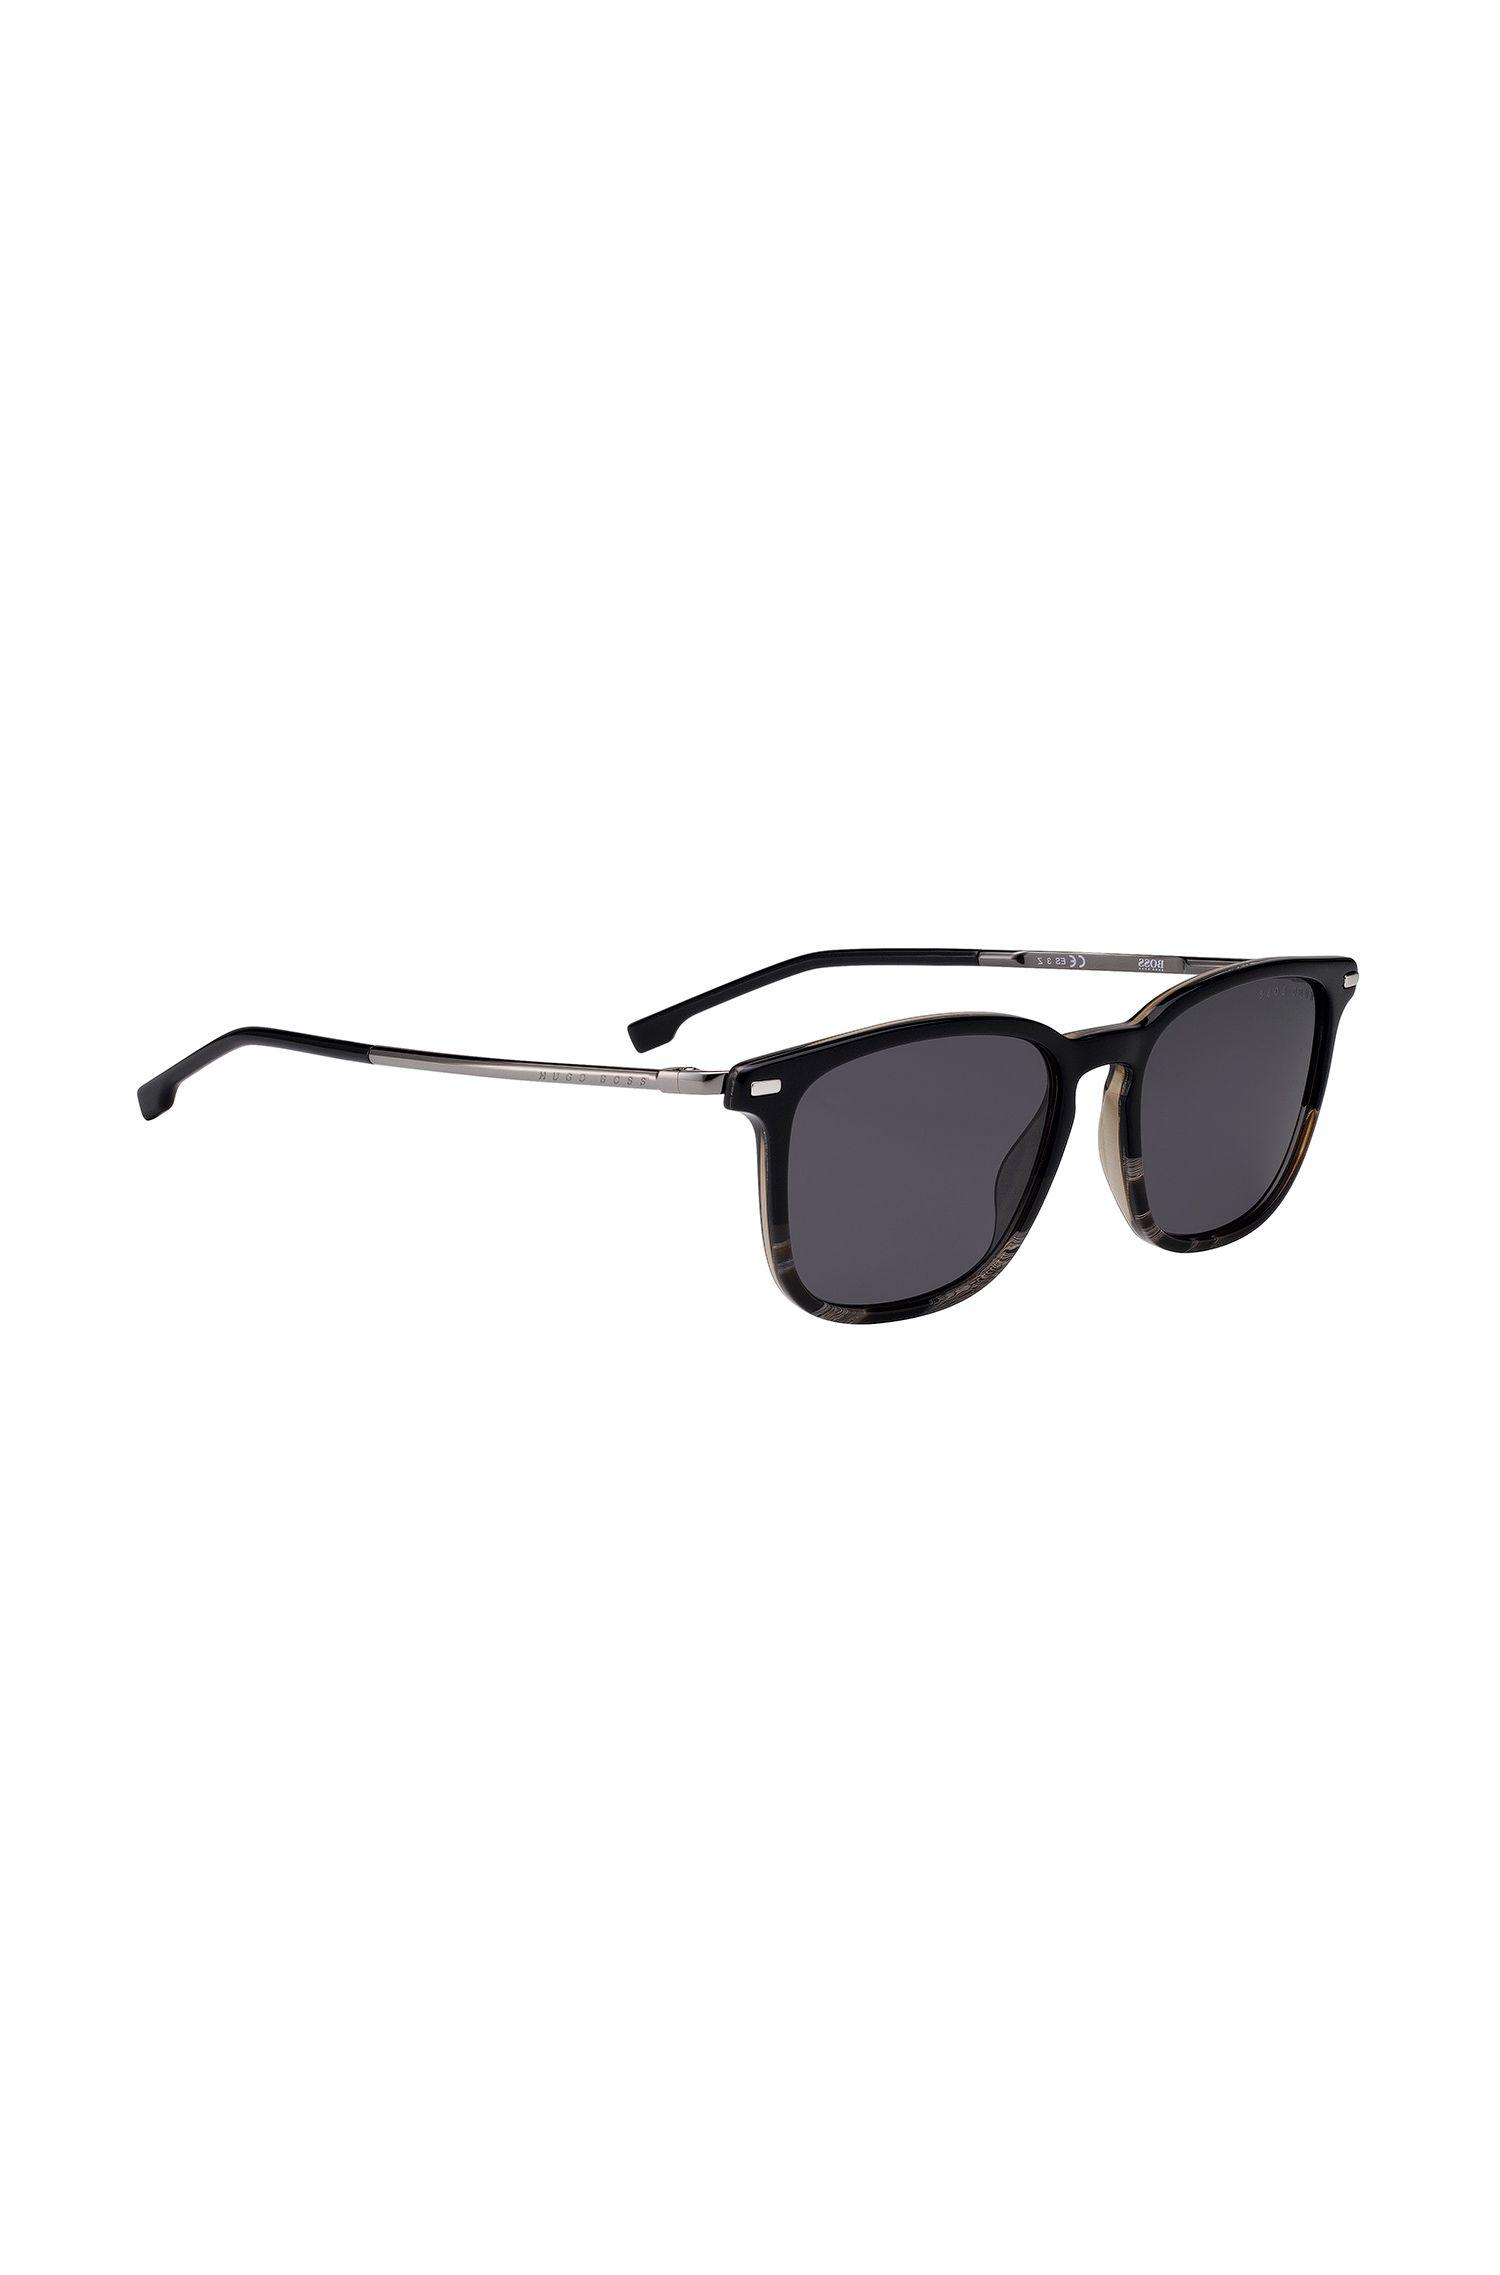 521a59caf27 Lyst - Boss Polarized Sunglasses With Black-and-gray-horn Acetate ...